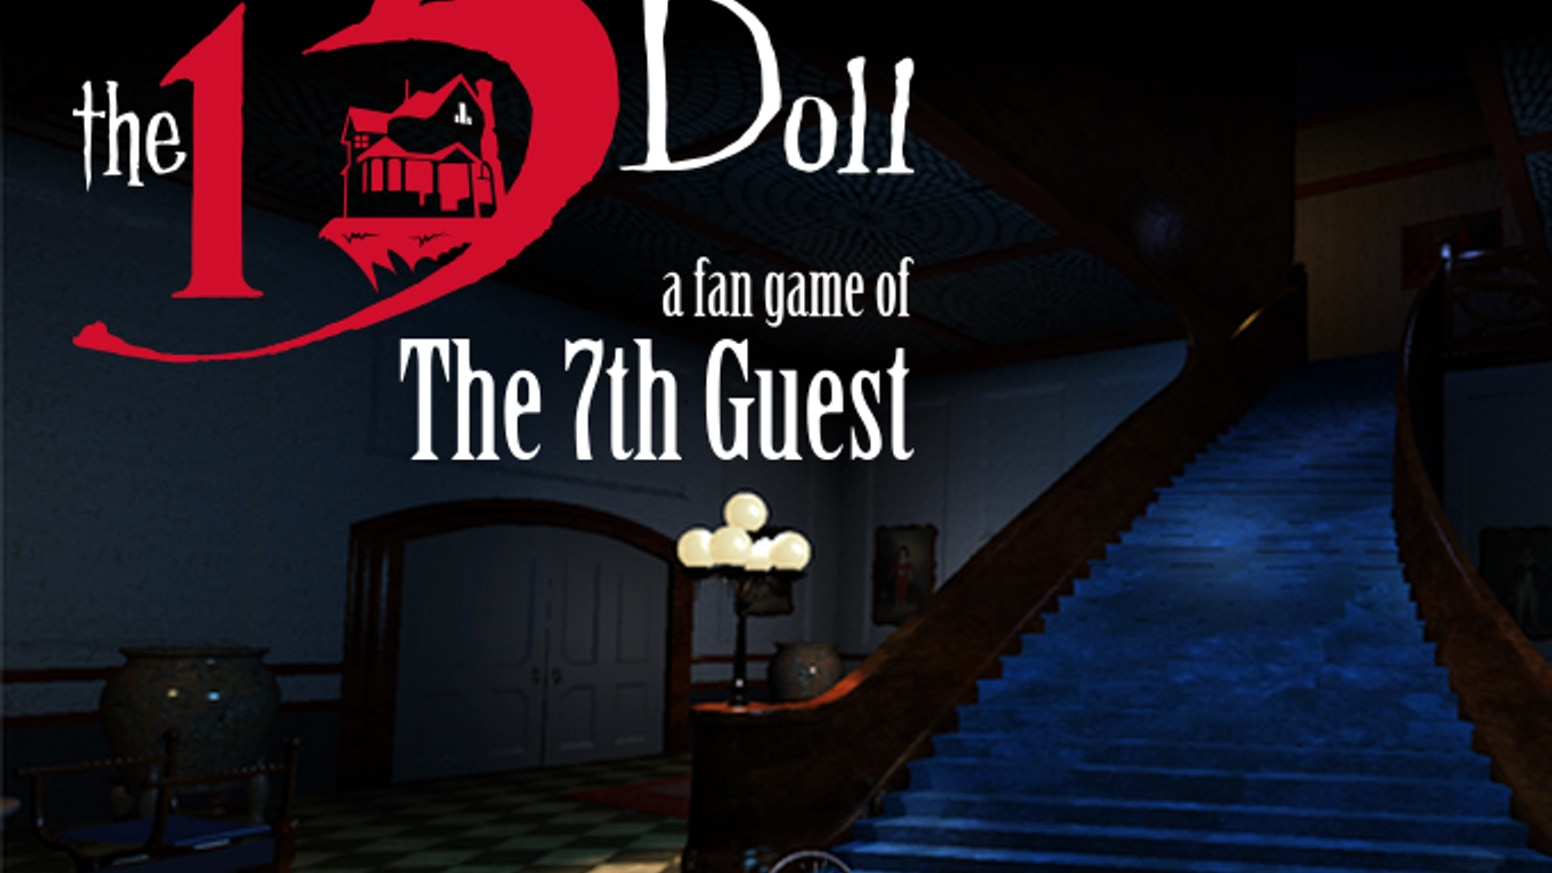 A Mesmerizing Game Of Haunted Places Creepy Encounters And Mind Bending Puzzles To Challenge